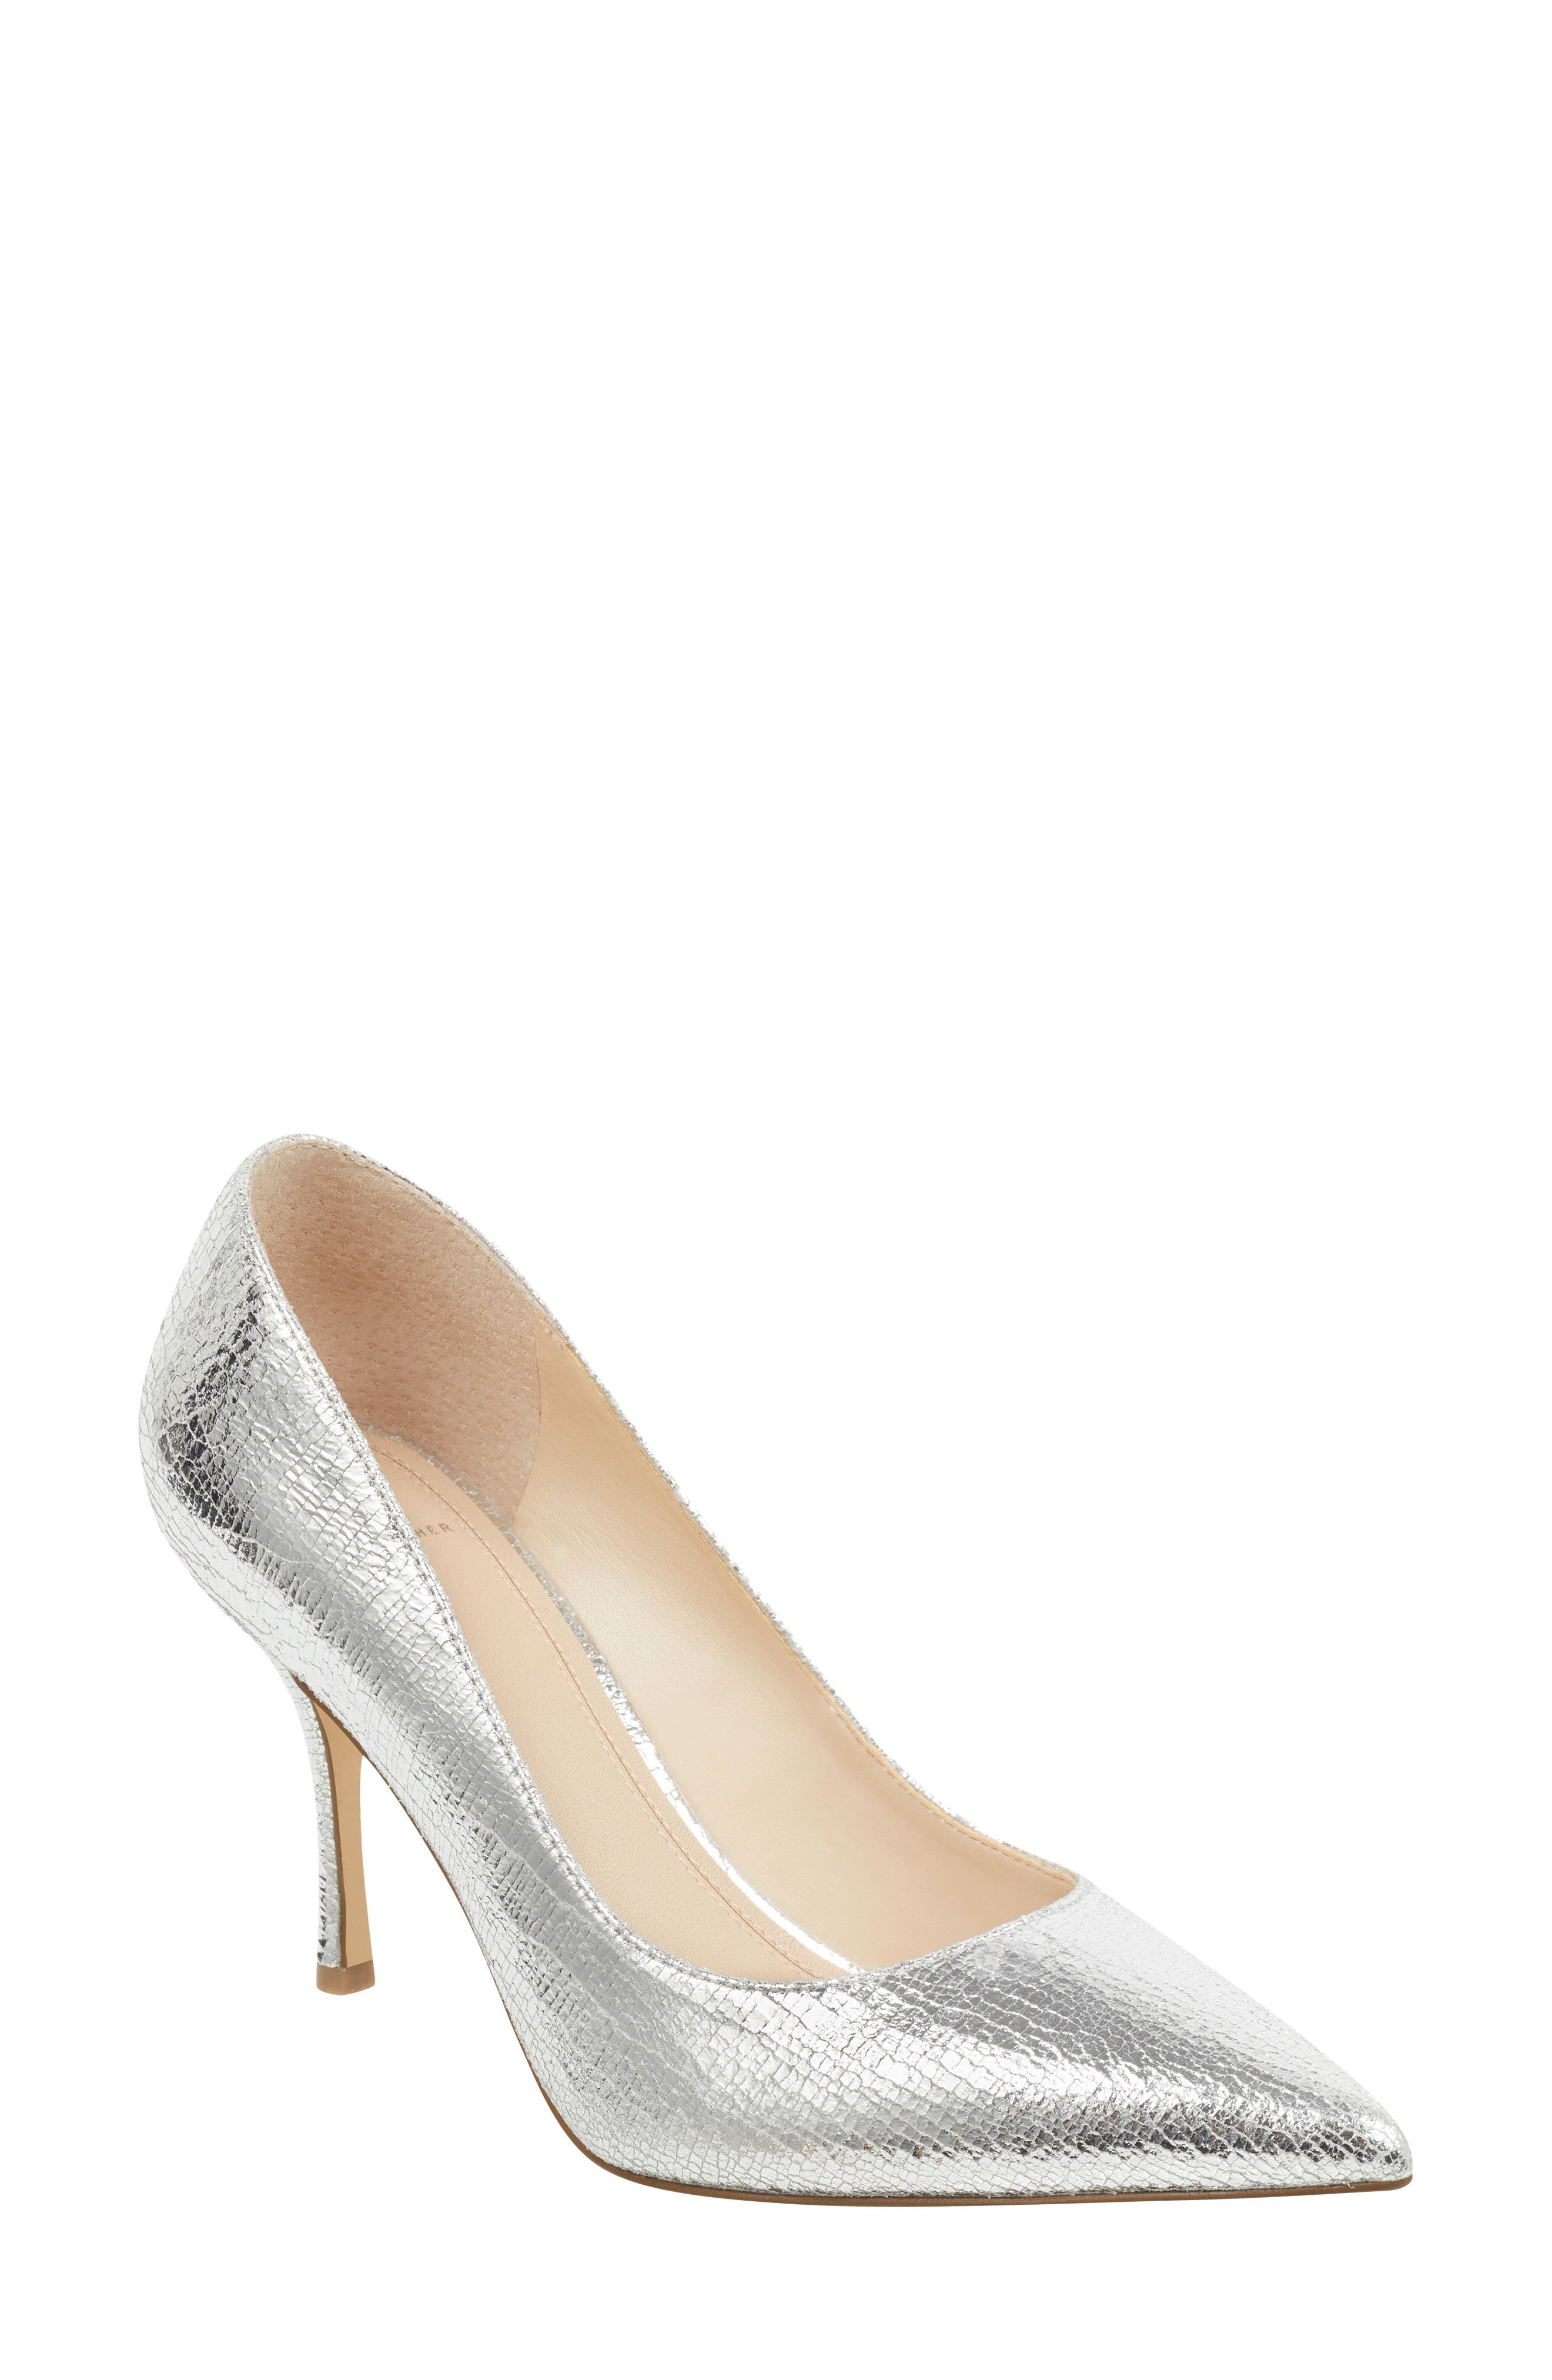 MARC FISHER LTD Carter Pump, Main, color, SILVER LEATHER